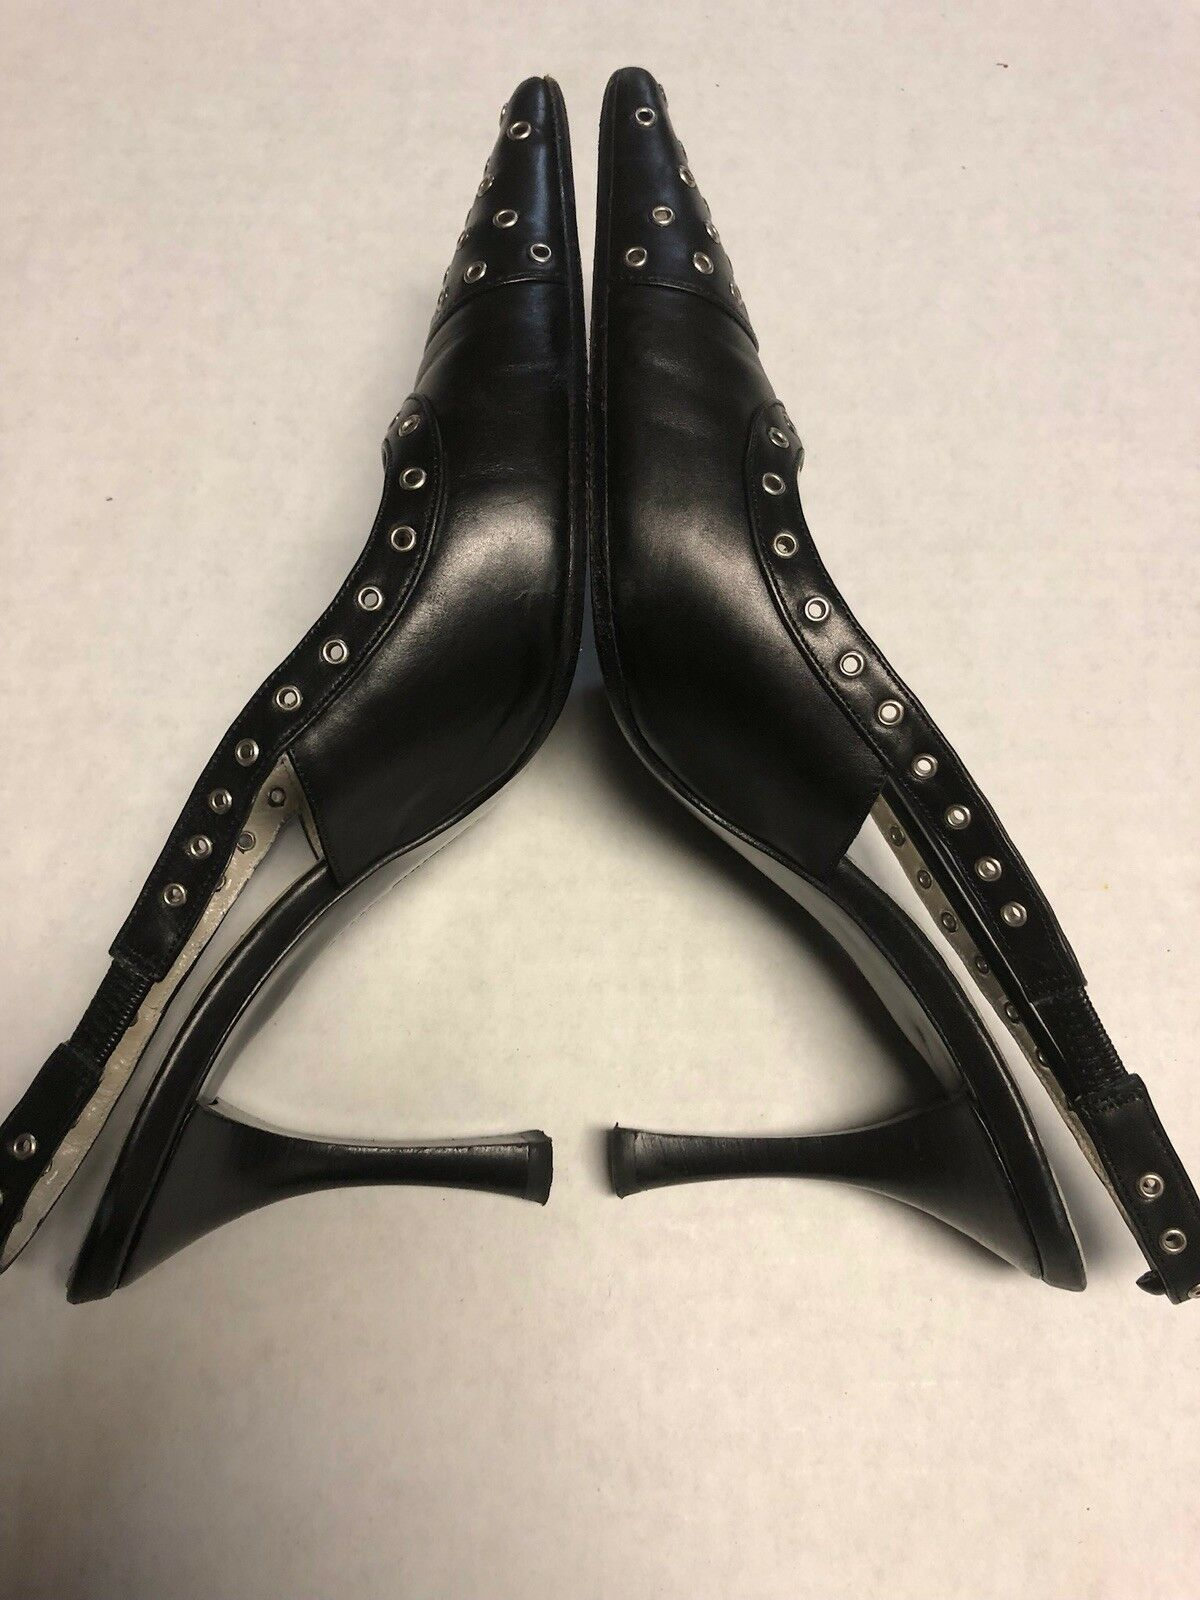 Adrienne Vittadini Claudia Shoes Black Pointy Pumps With High Heels Size 6 1/2